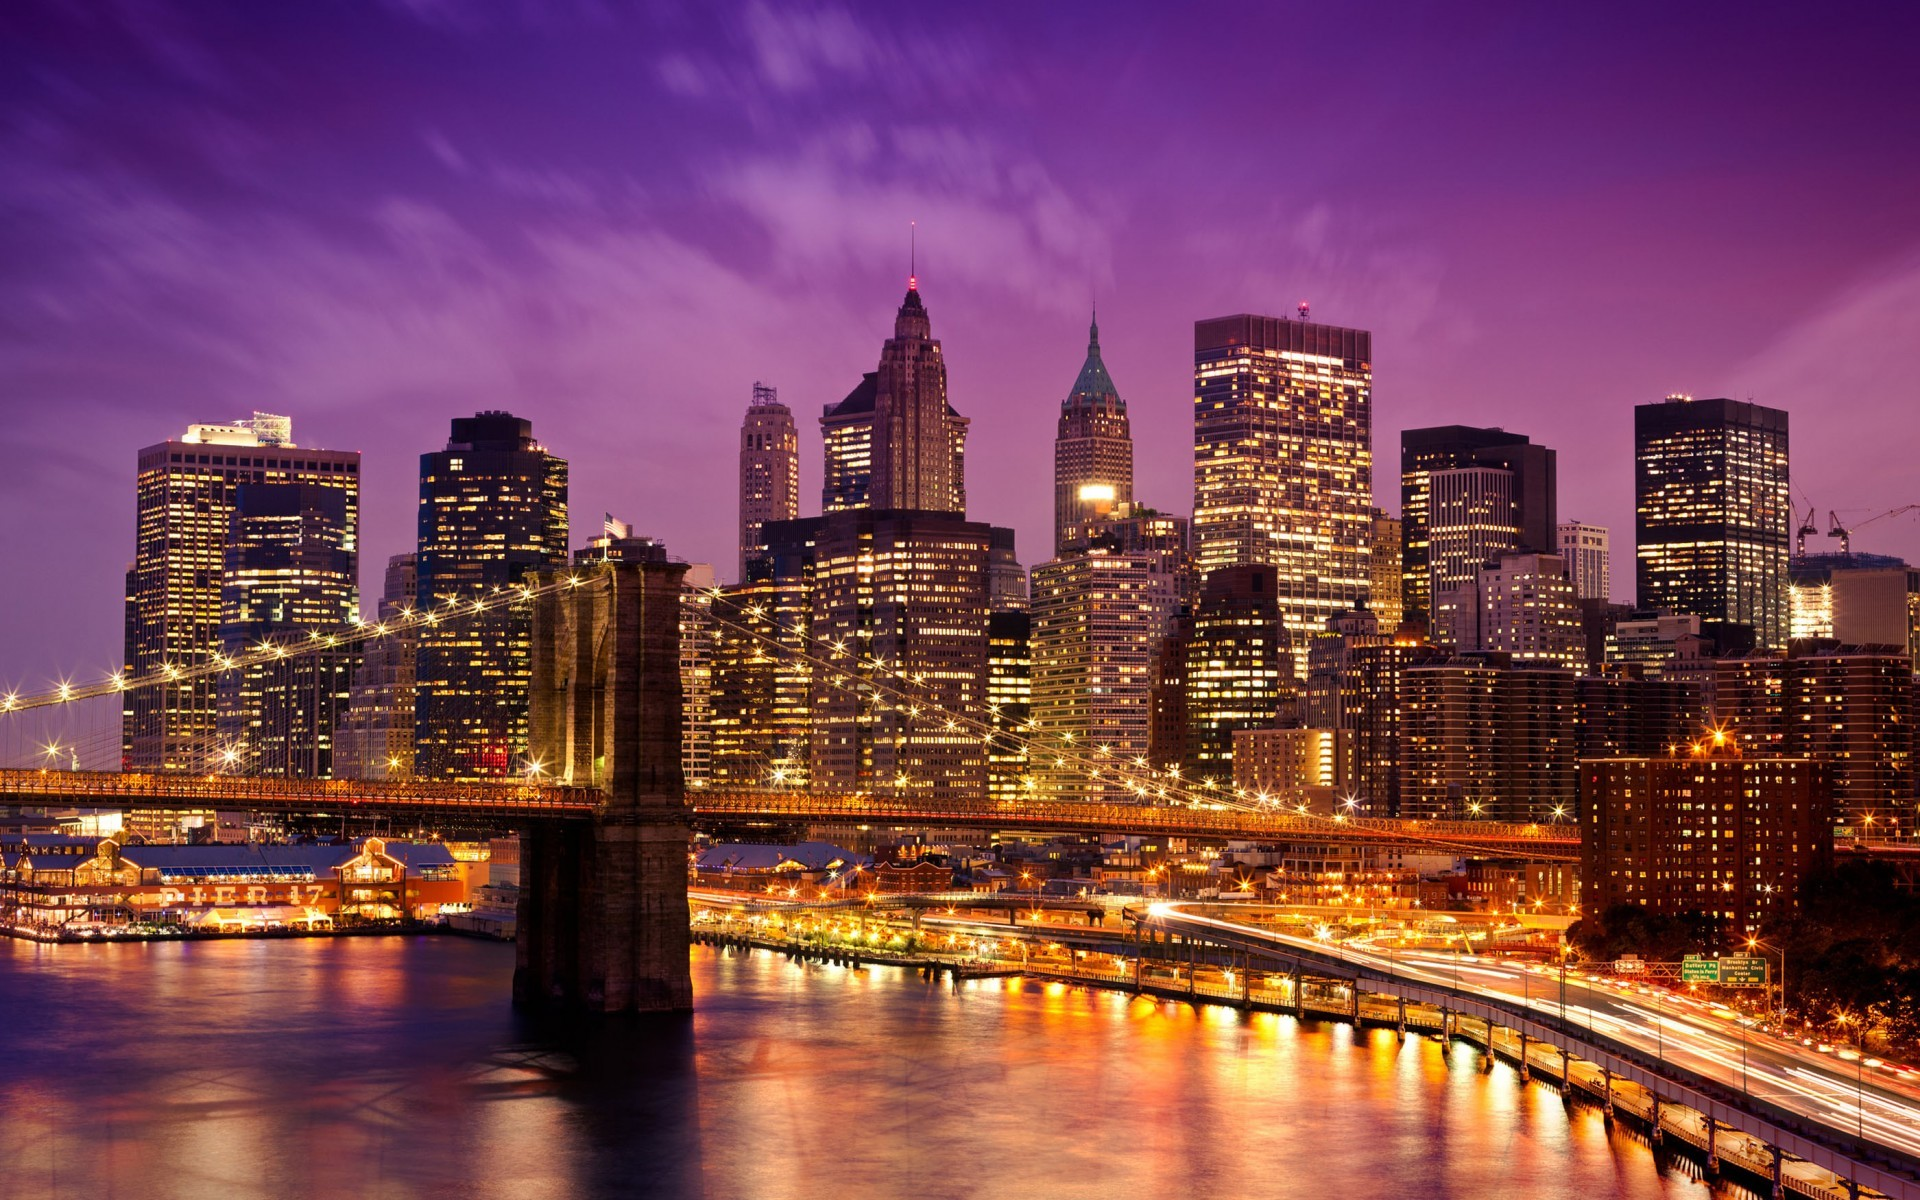 New York City Desktop Wallpaper - Backgrounds New York City , HD Wallpaper & Backgrounds